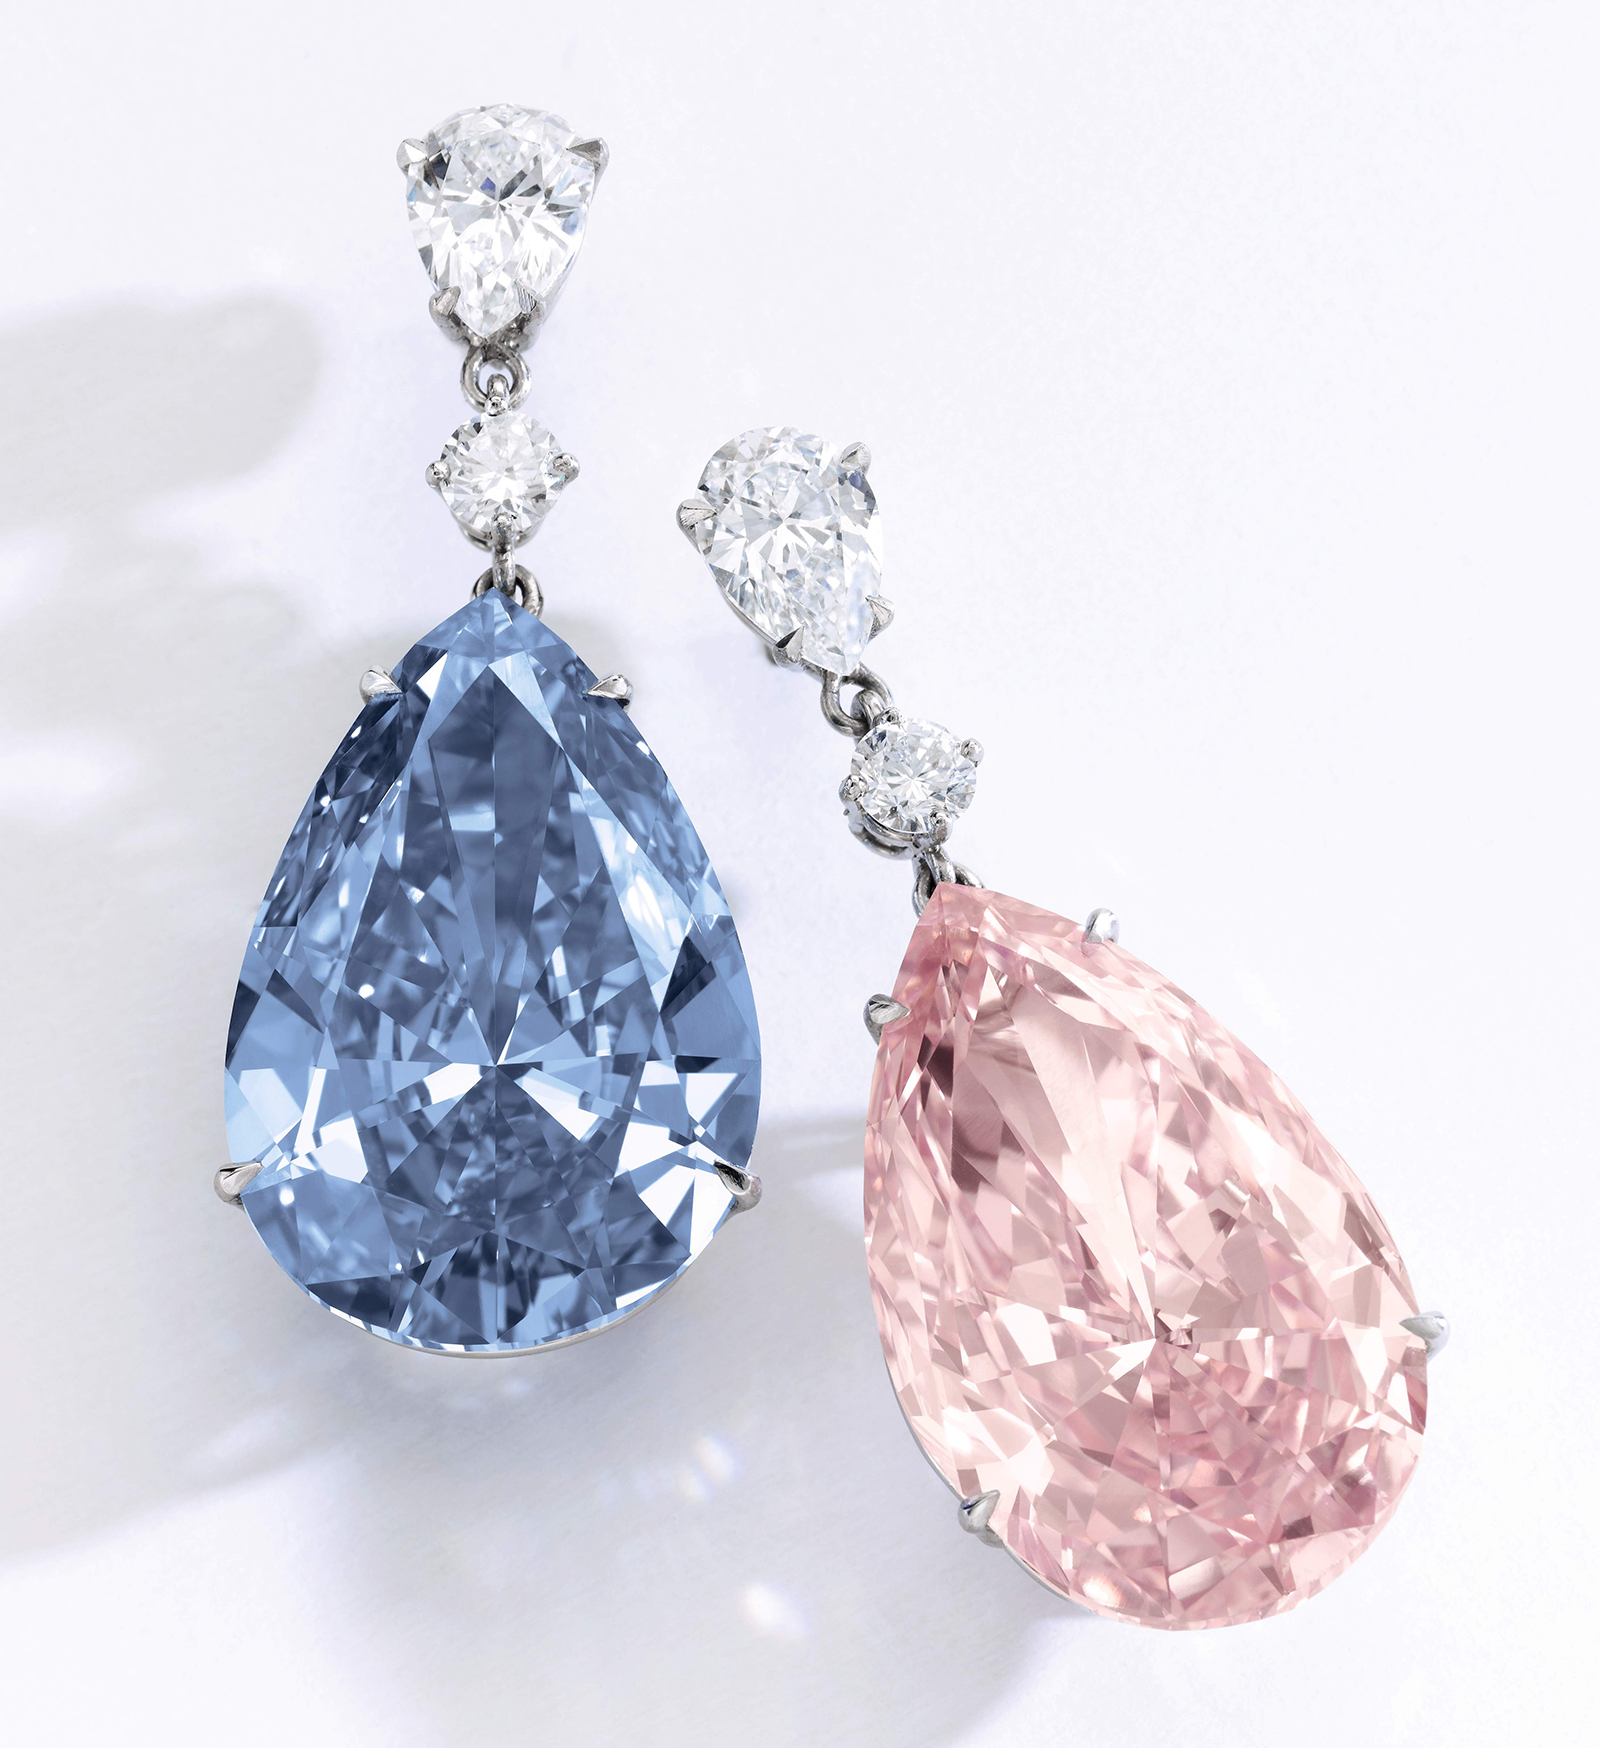 Apollo blue and Artemis pink diamonds on sale at Sotheby's